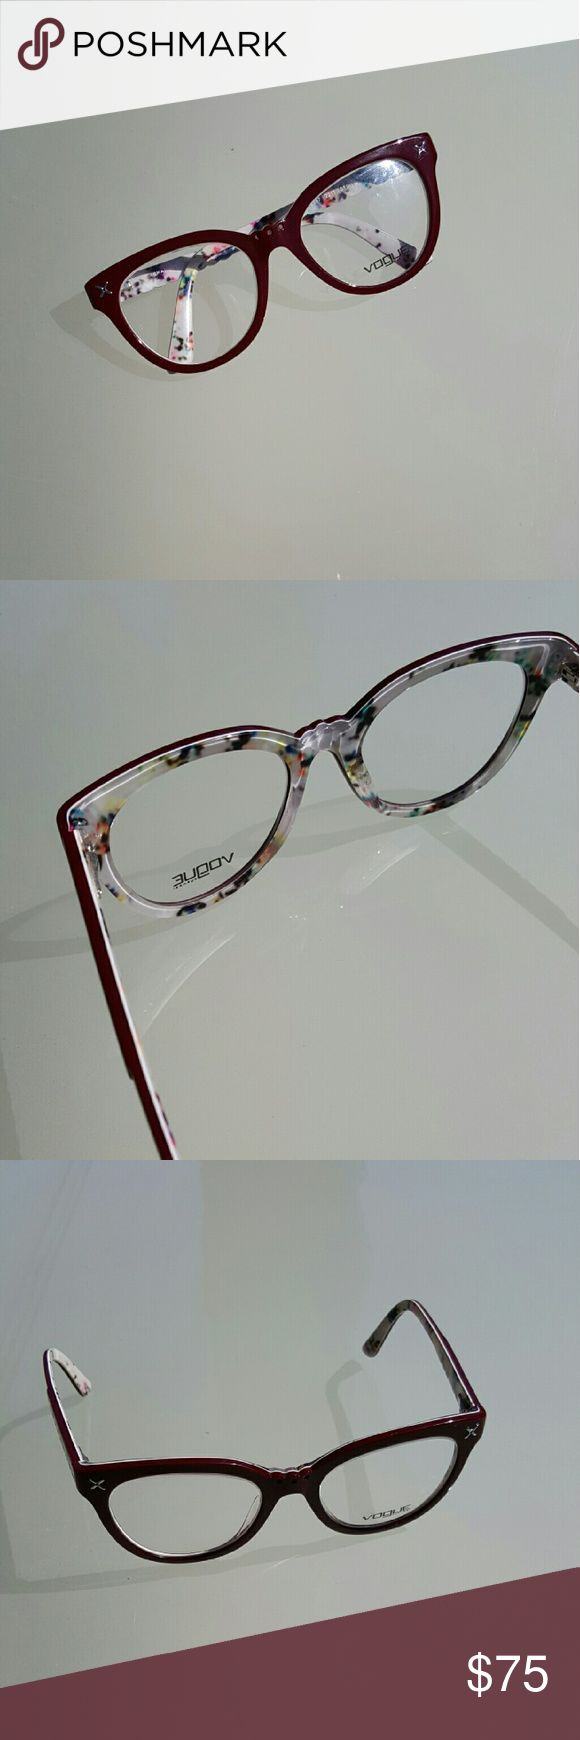 Charlotte Ronson for Vogue glasses Vogue glasses designed by Charlotte Ronson. Burgundy with floral inside. Super cute and in great condition. Charlotte Ronson Accessories Glasses